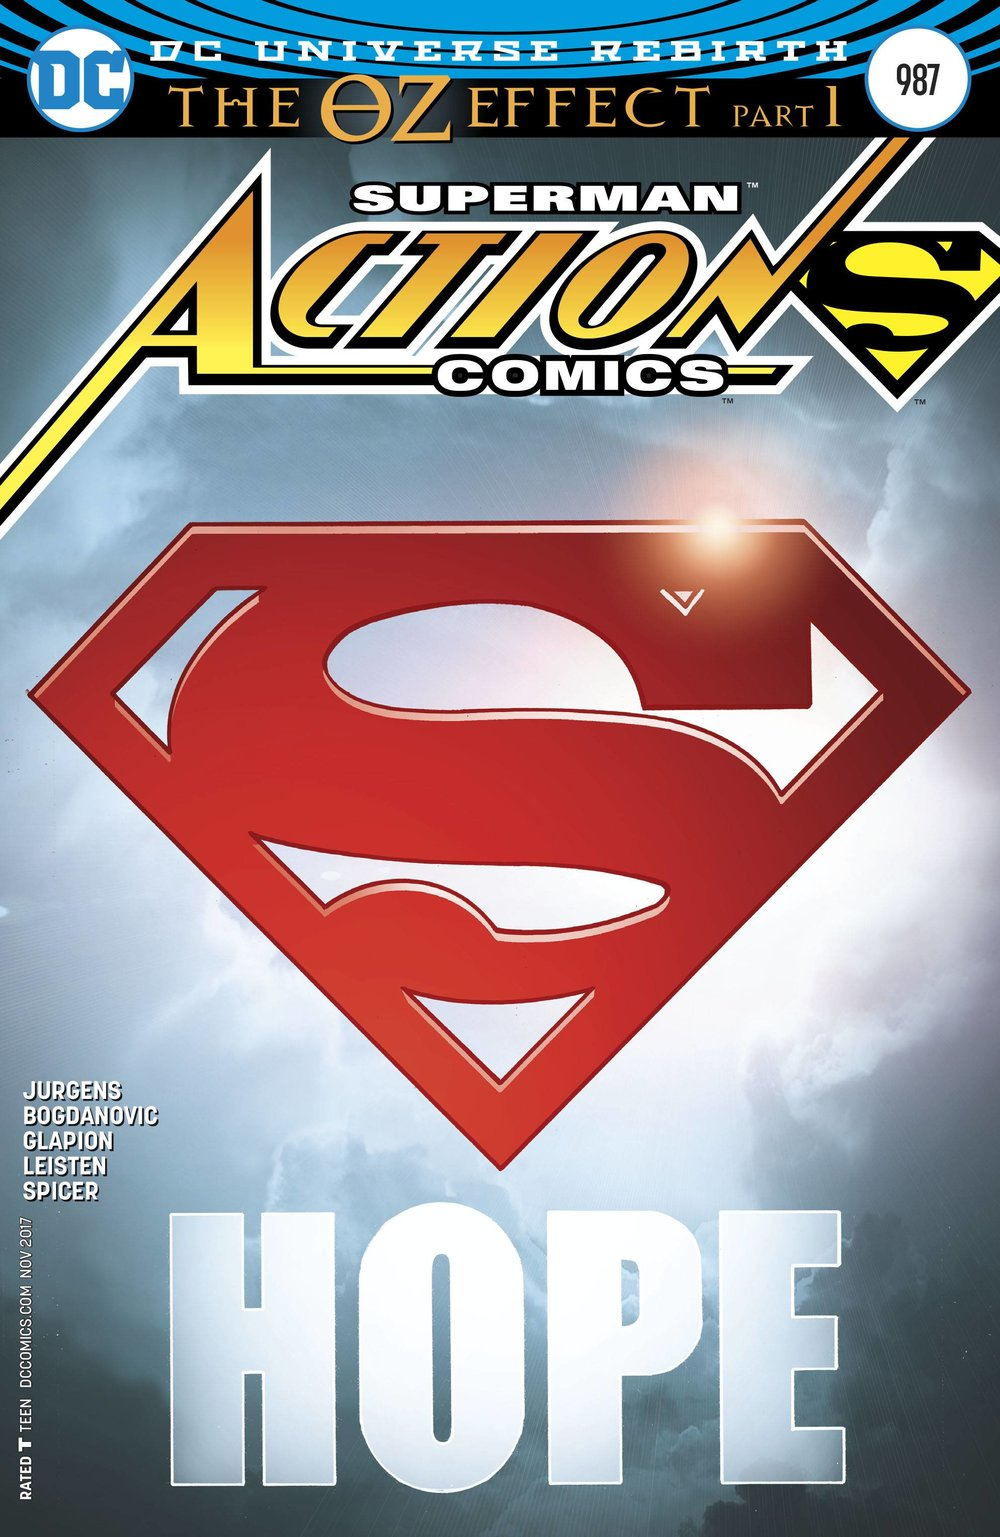 ACTION COMICS 987 (OZ EFFECT).jpg